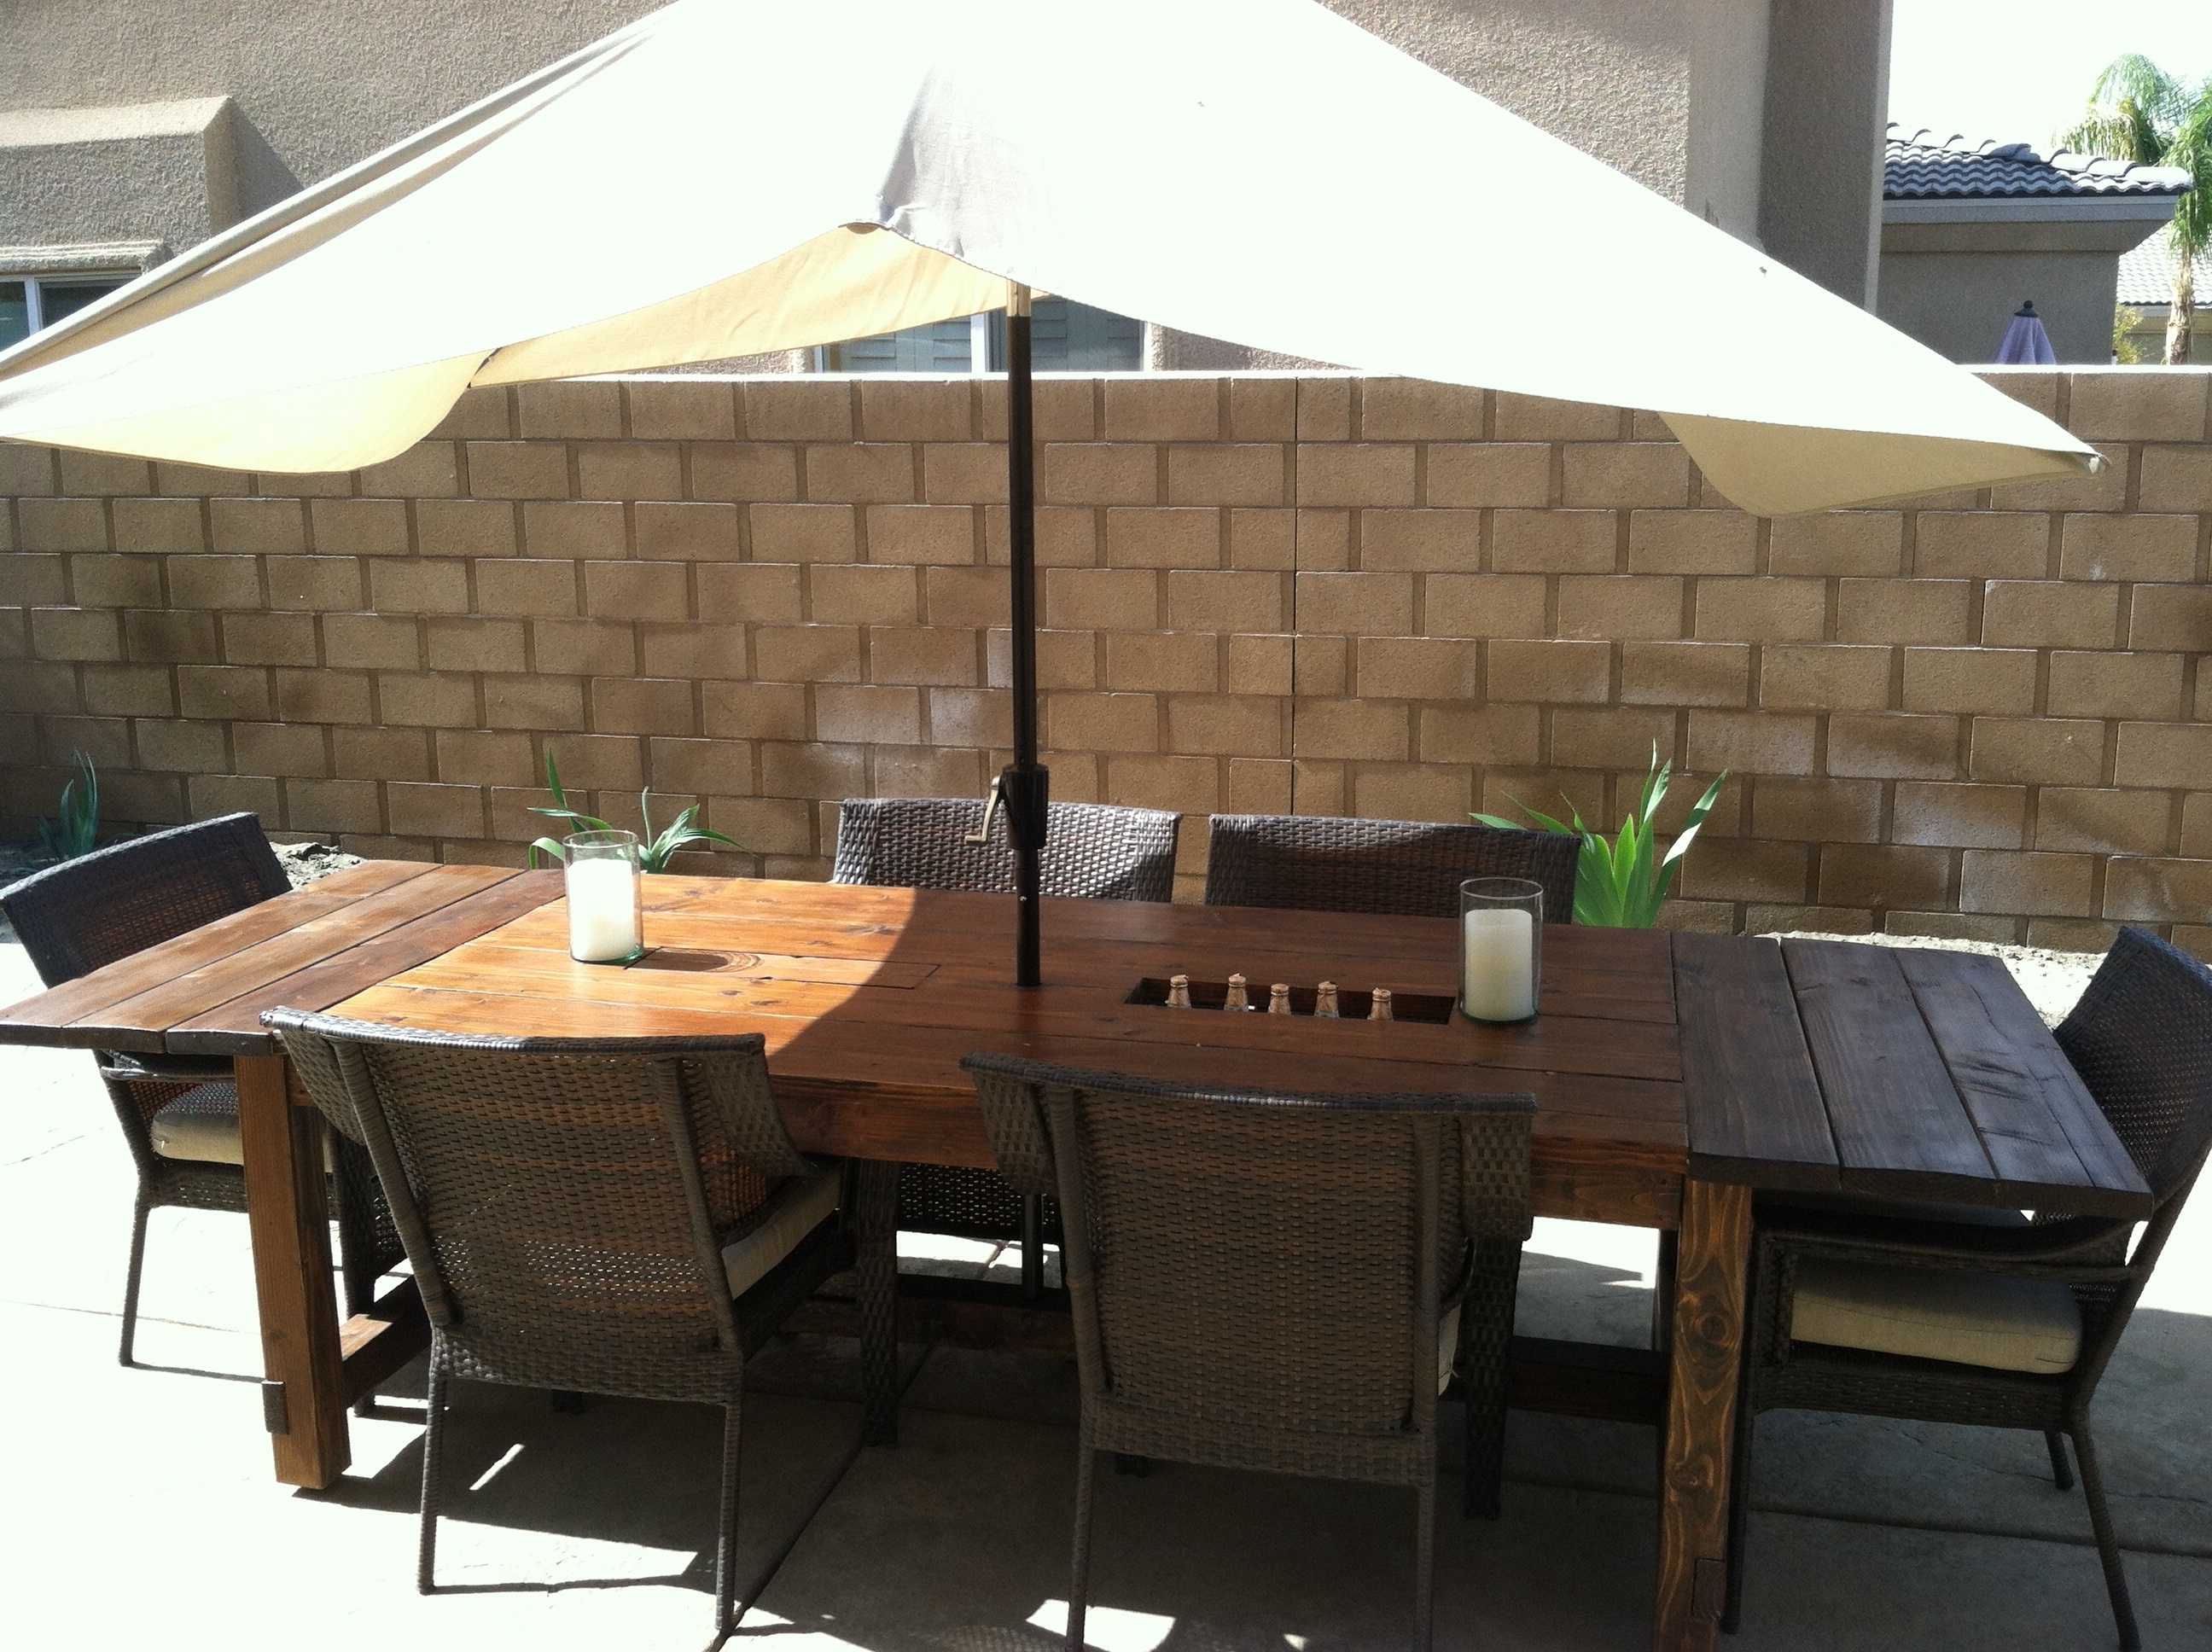 Well Known Patio Conversation Sets With Umbrella For Patio : Patio Table Umbrella Patio Table (View 10 of 15)